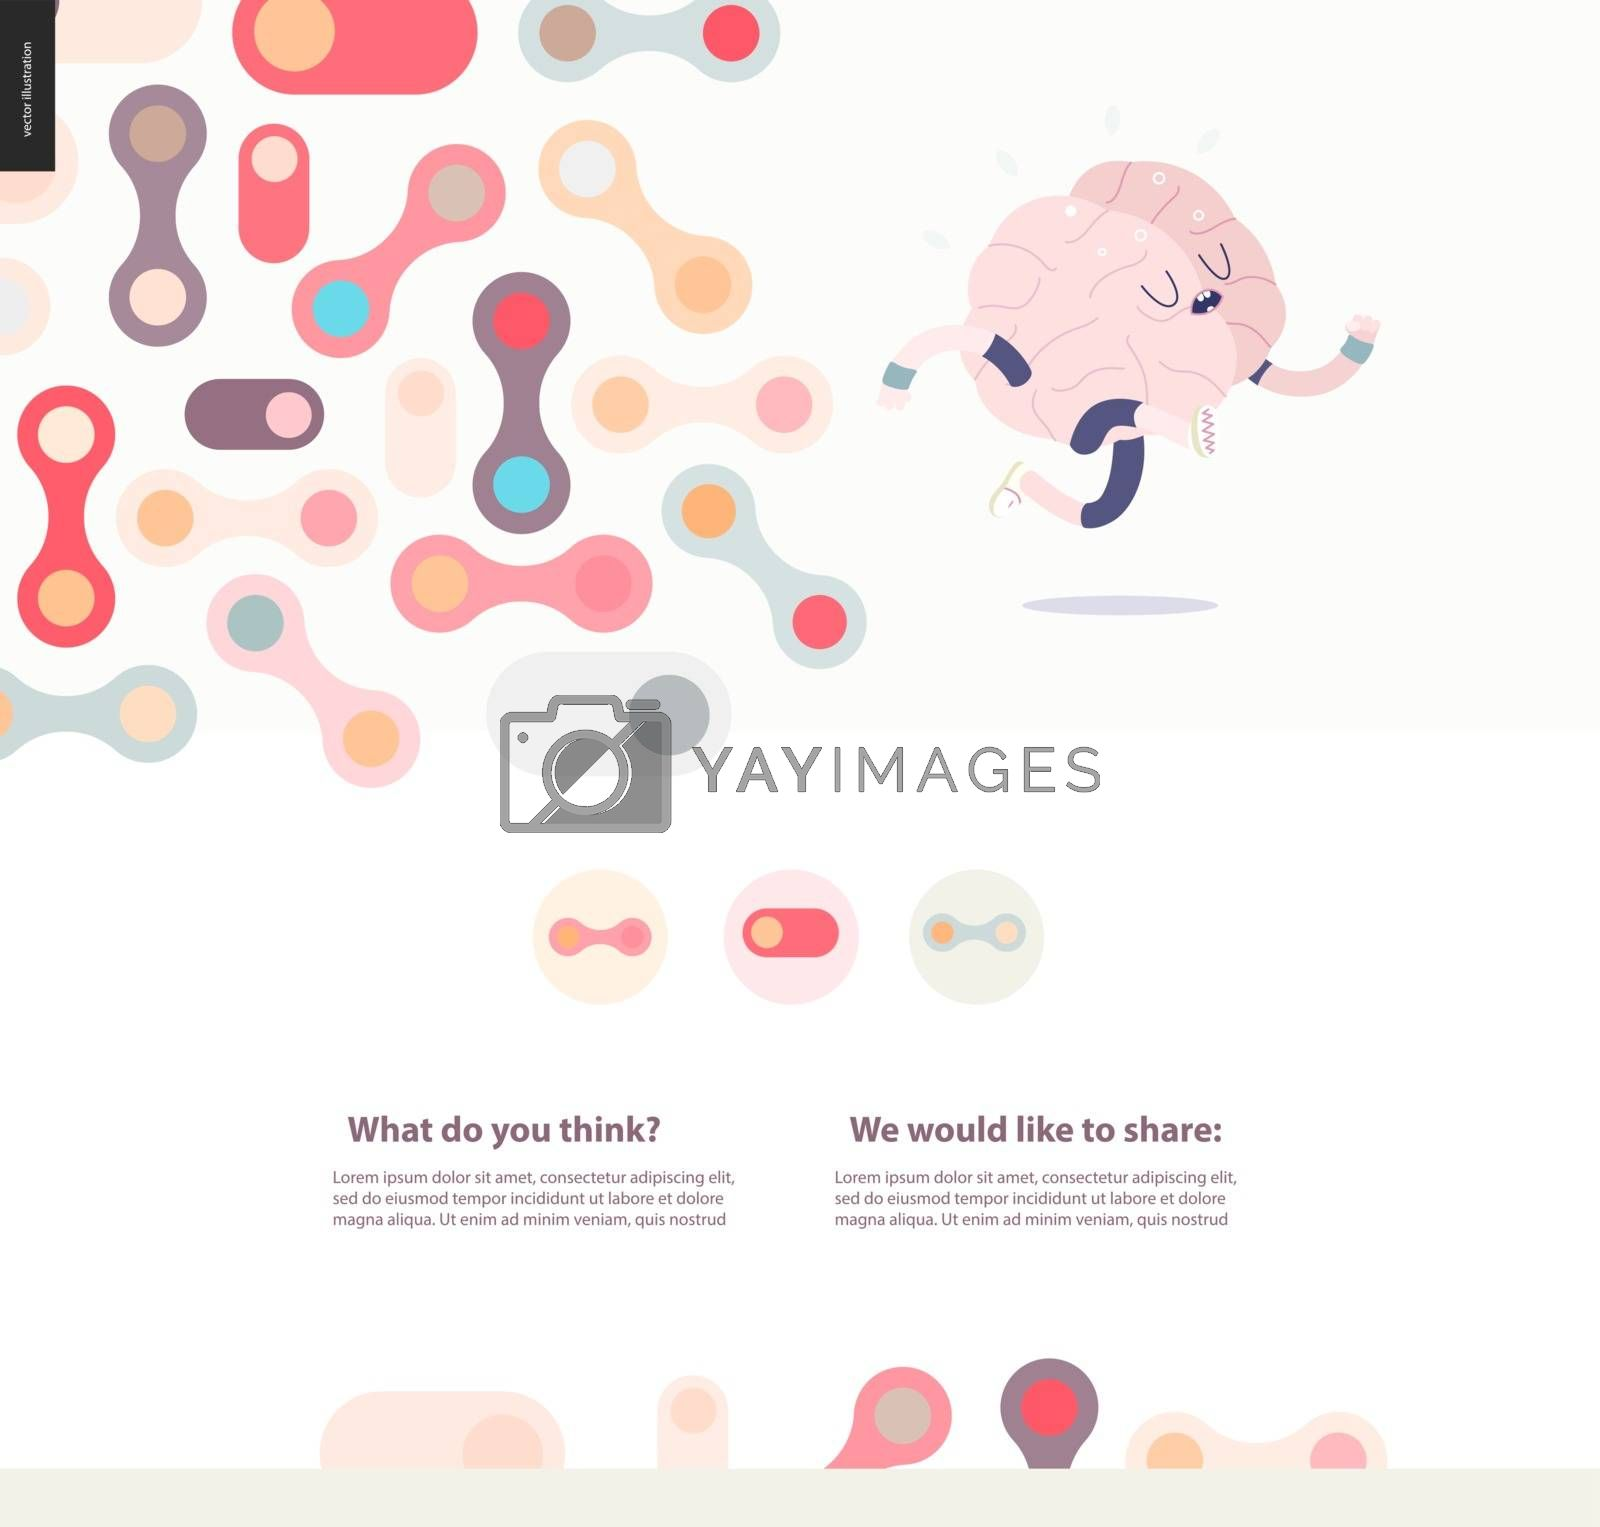 Running brain template design web mockup vector banner - rounded pastel colored shapes isolated on cream background accompanied with a title and text block template, and running brain